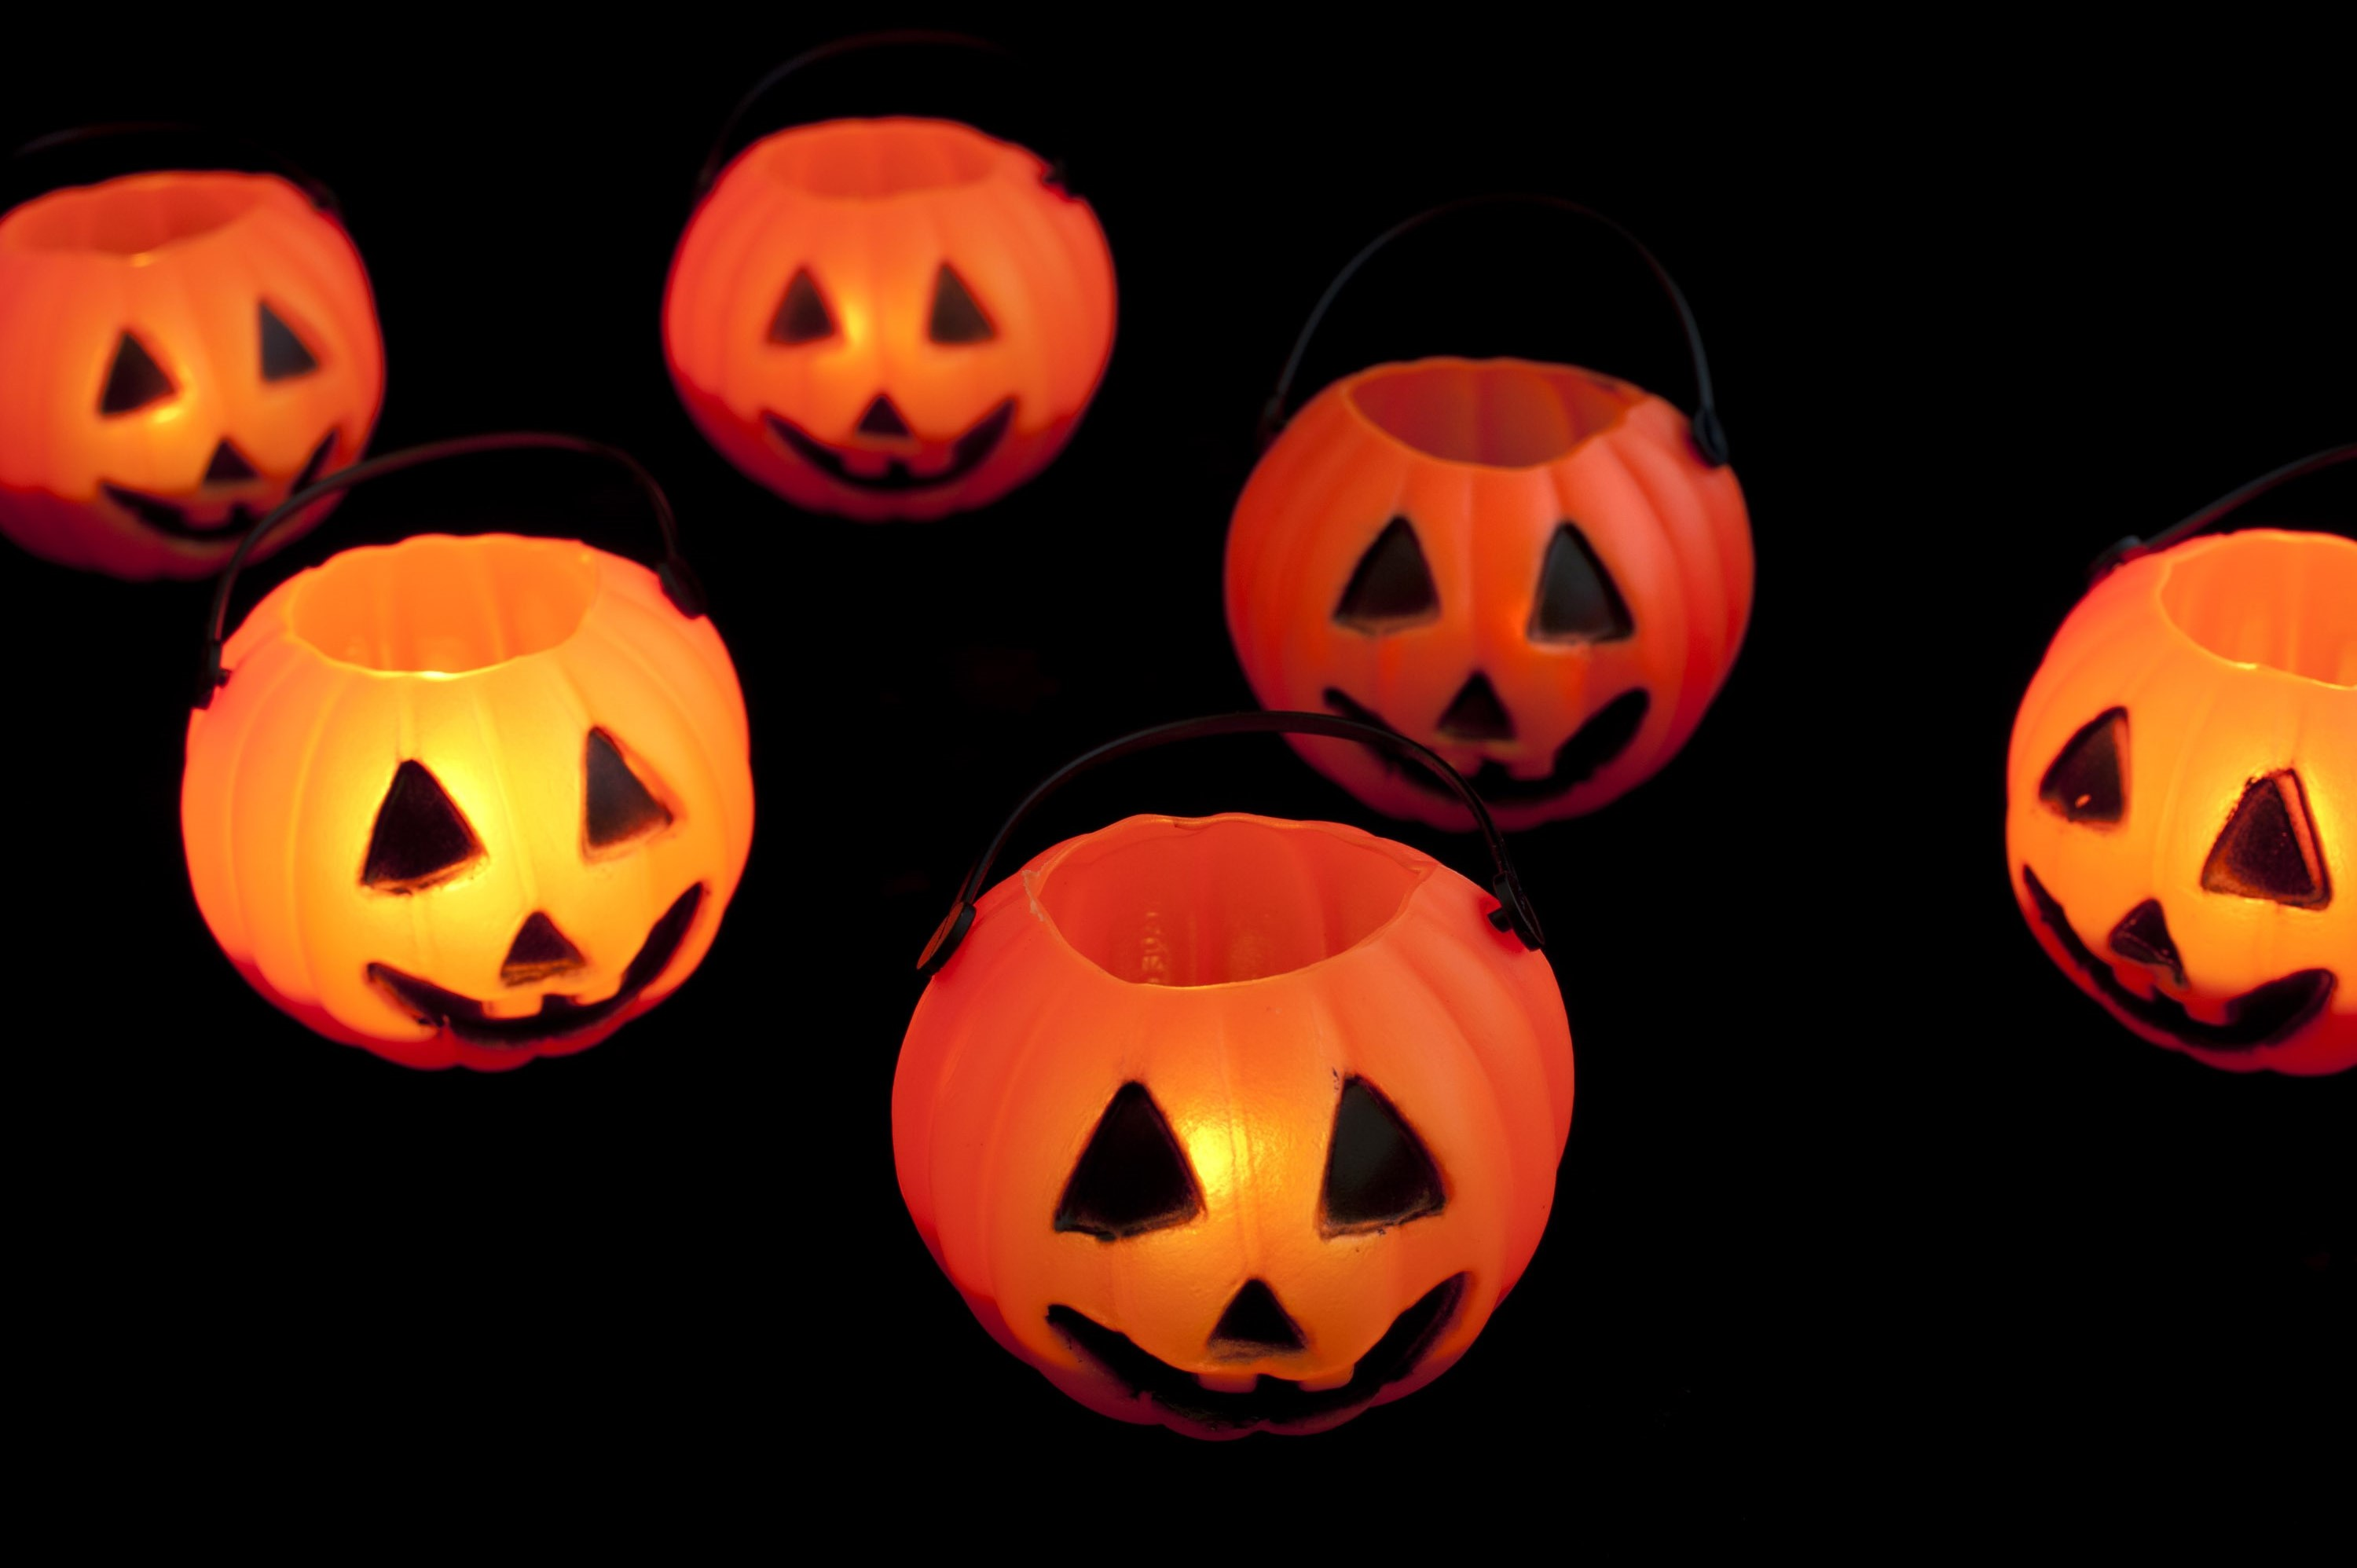 black background with orange glowing jack-o-lantern candle lights with spooky faces